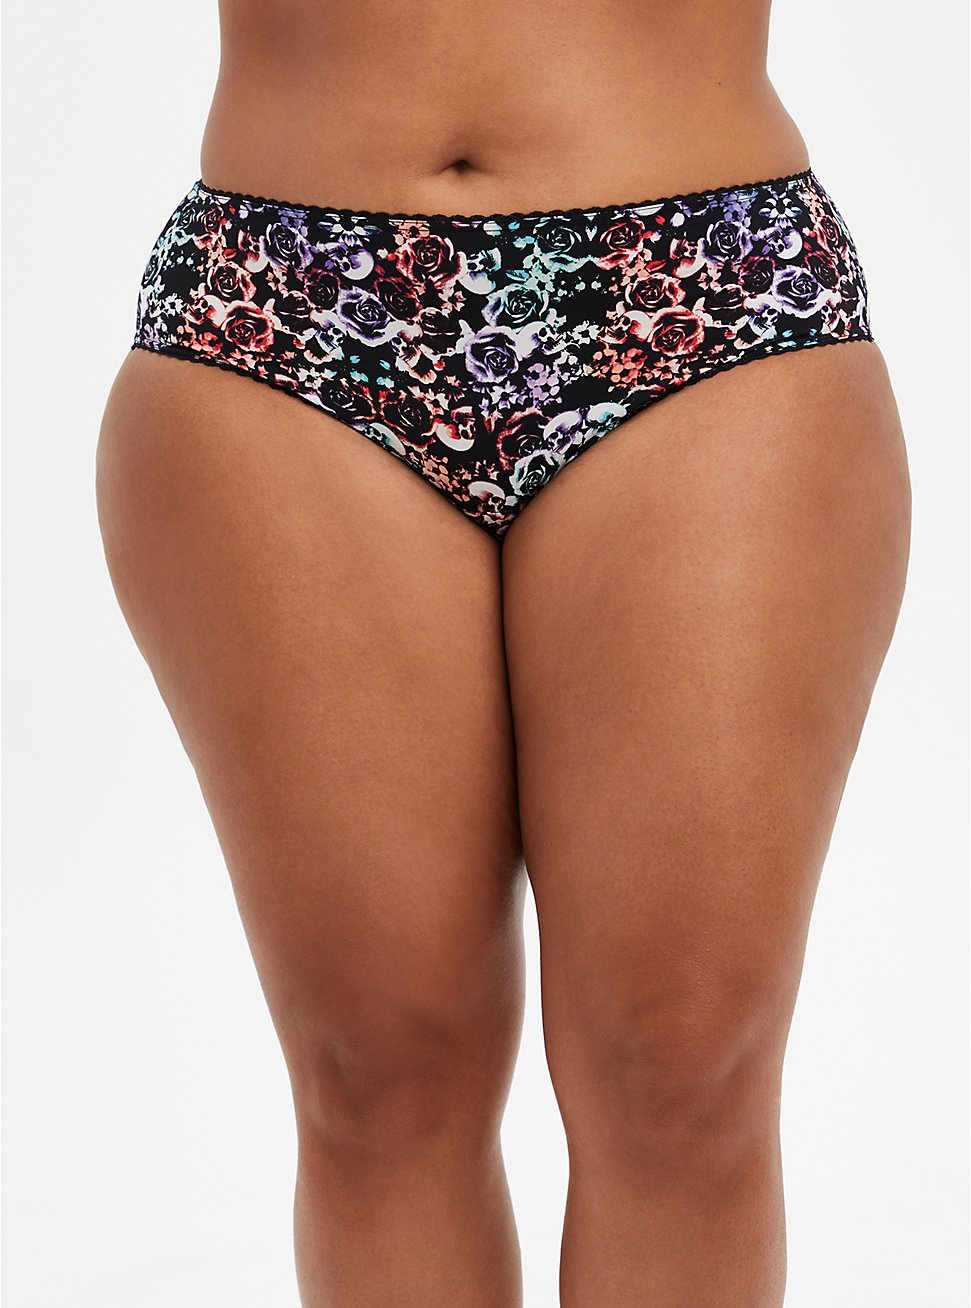 Mirrored Skull Second Skin Cage Back Hipster Panty, MIRRORED SKULL FLORAL, hi-res